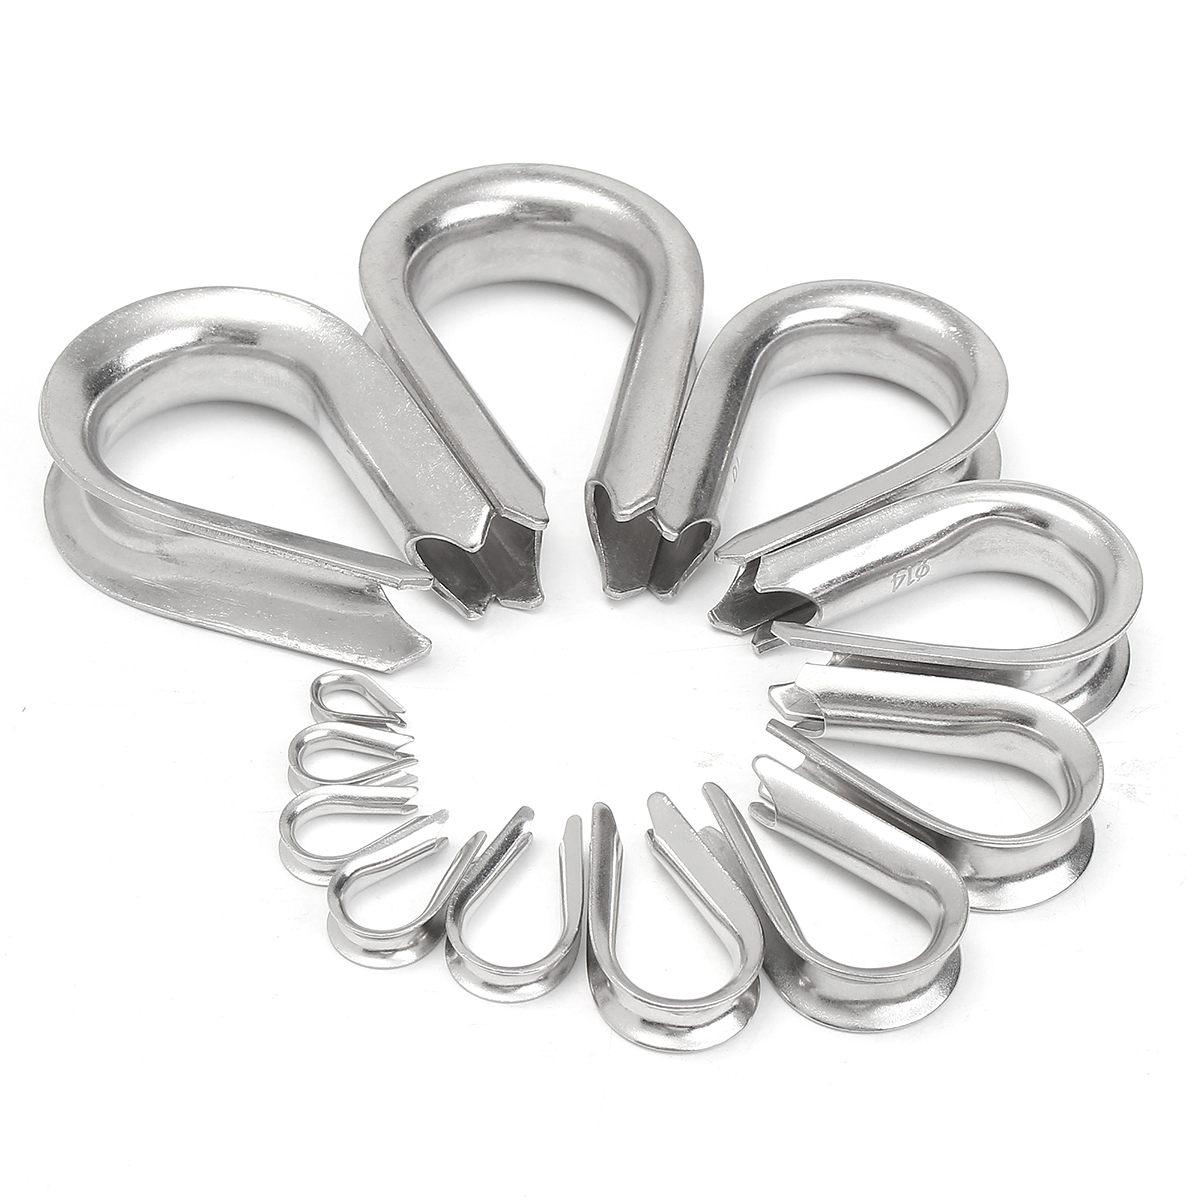 304 Stainless Steel M2 to M20 Silver Cable Wire Rope Thimbles Rigging Hardware 12 Sizes